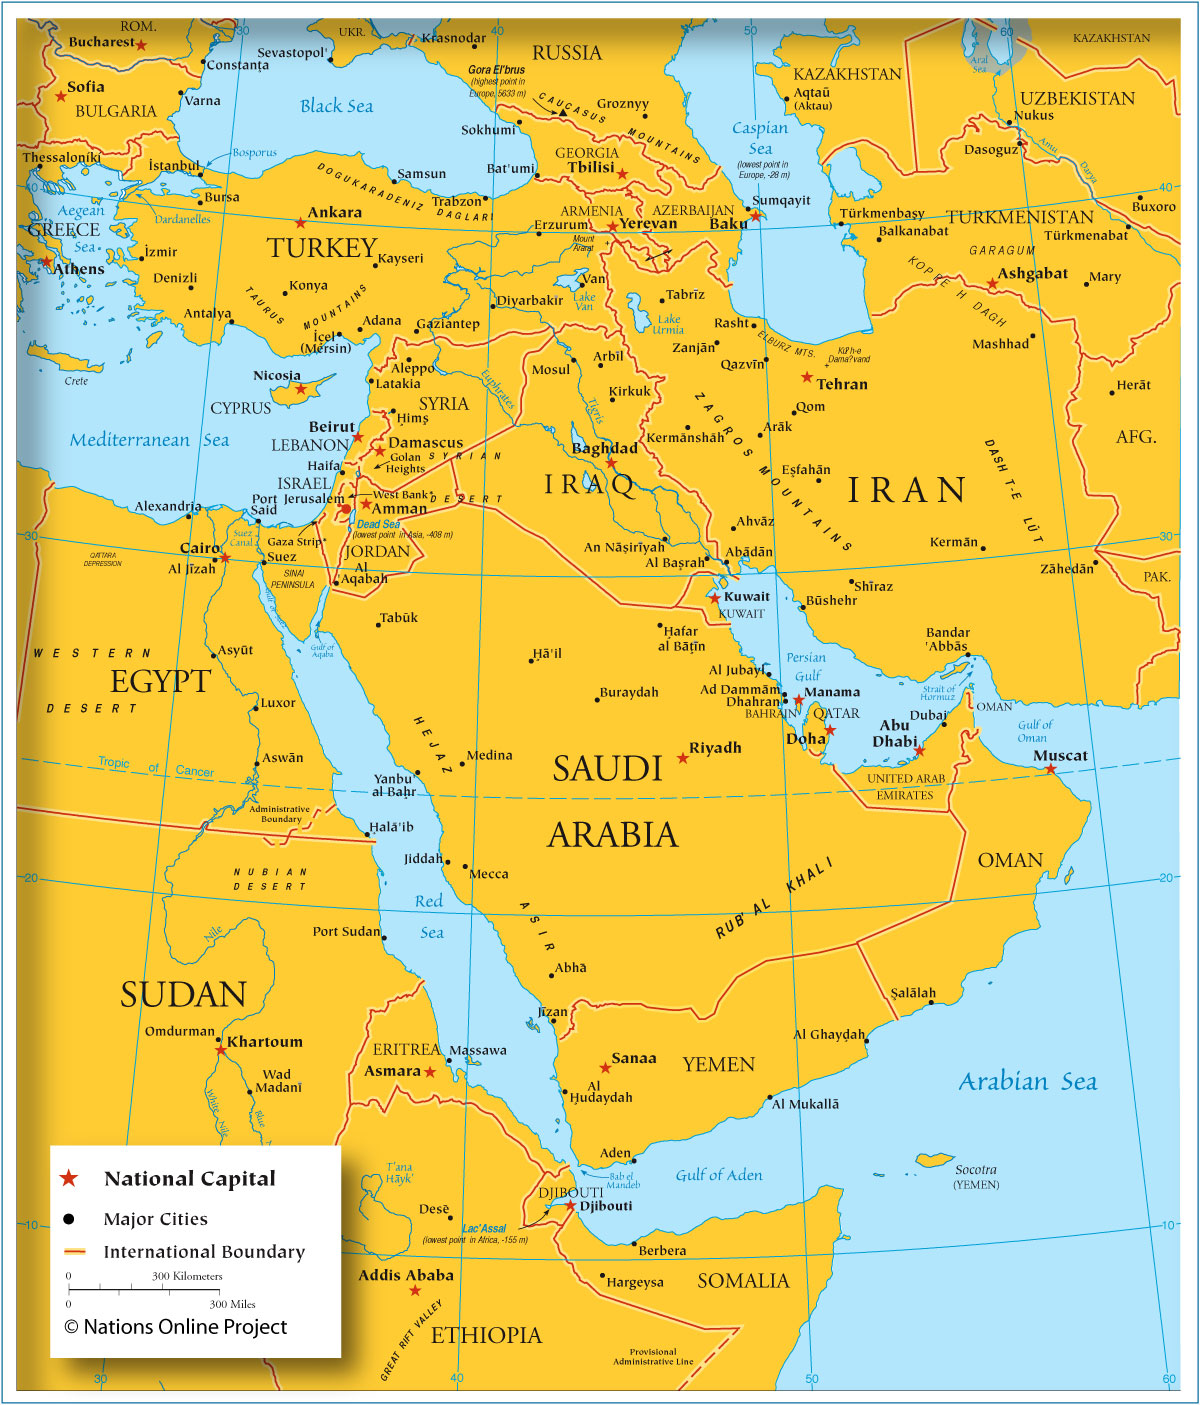 Map of southwestern asia and the middle east